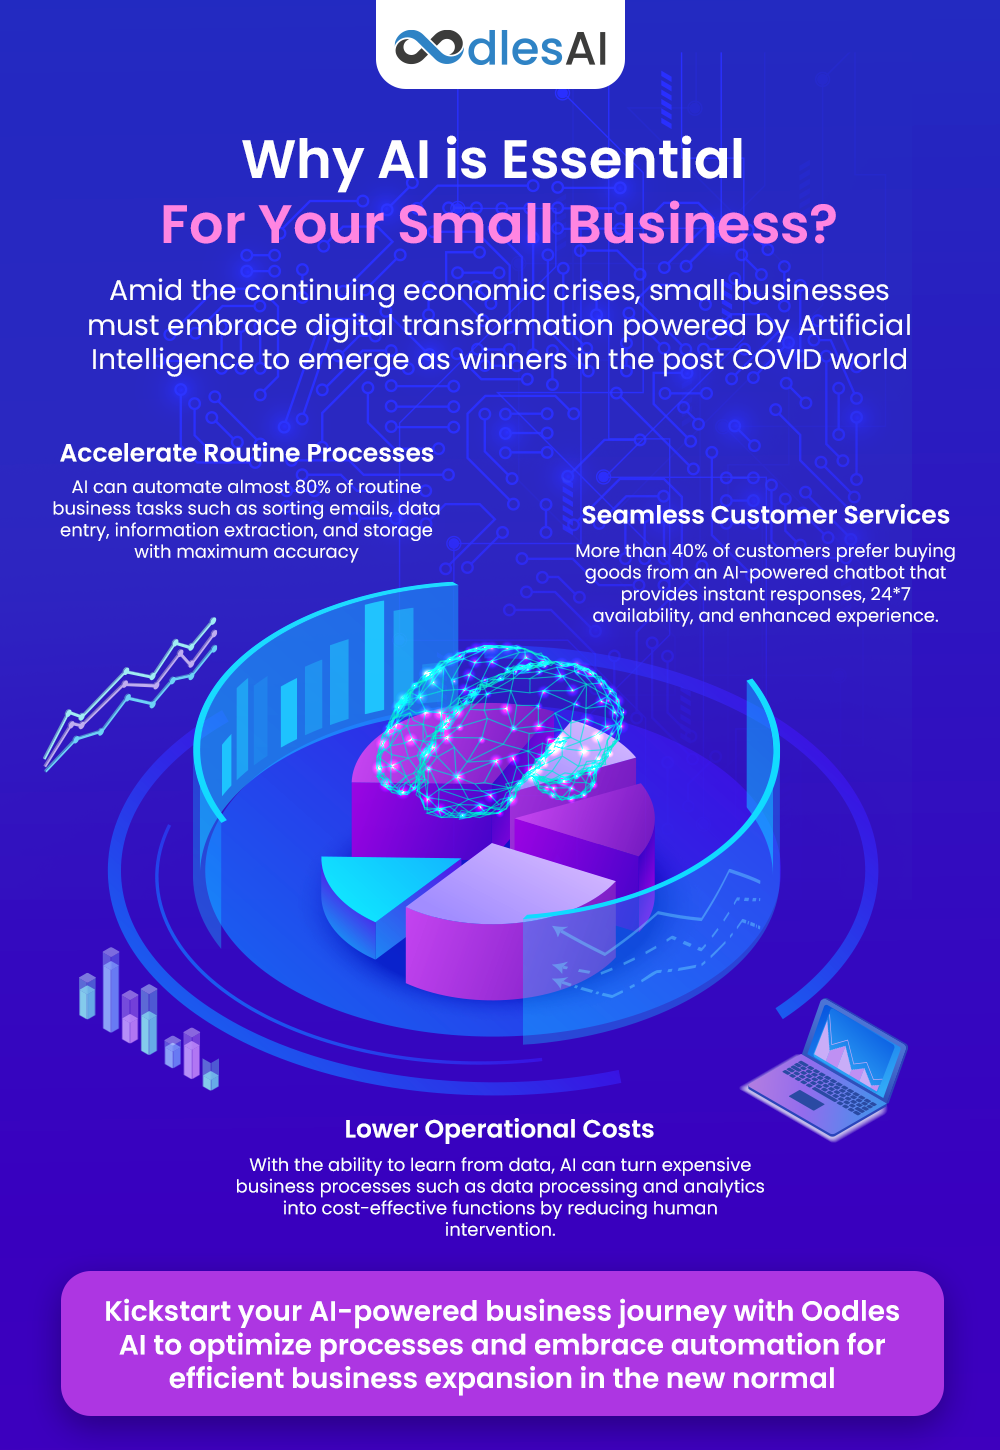 benefits of AI for small business